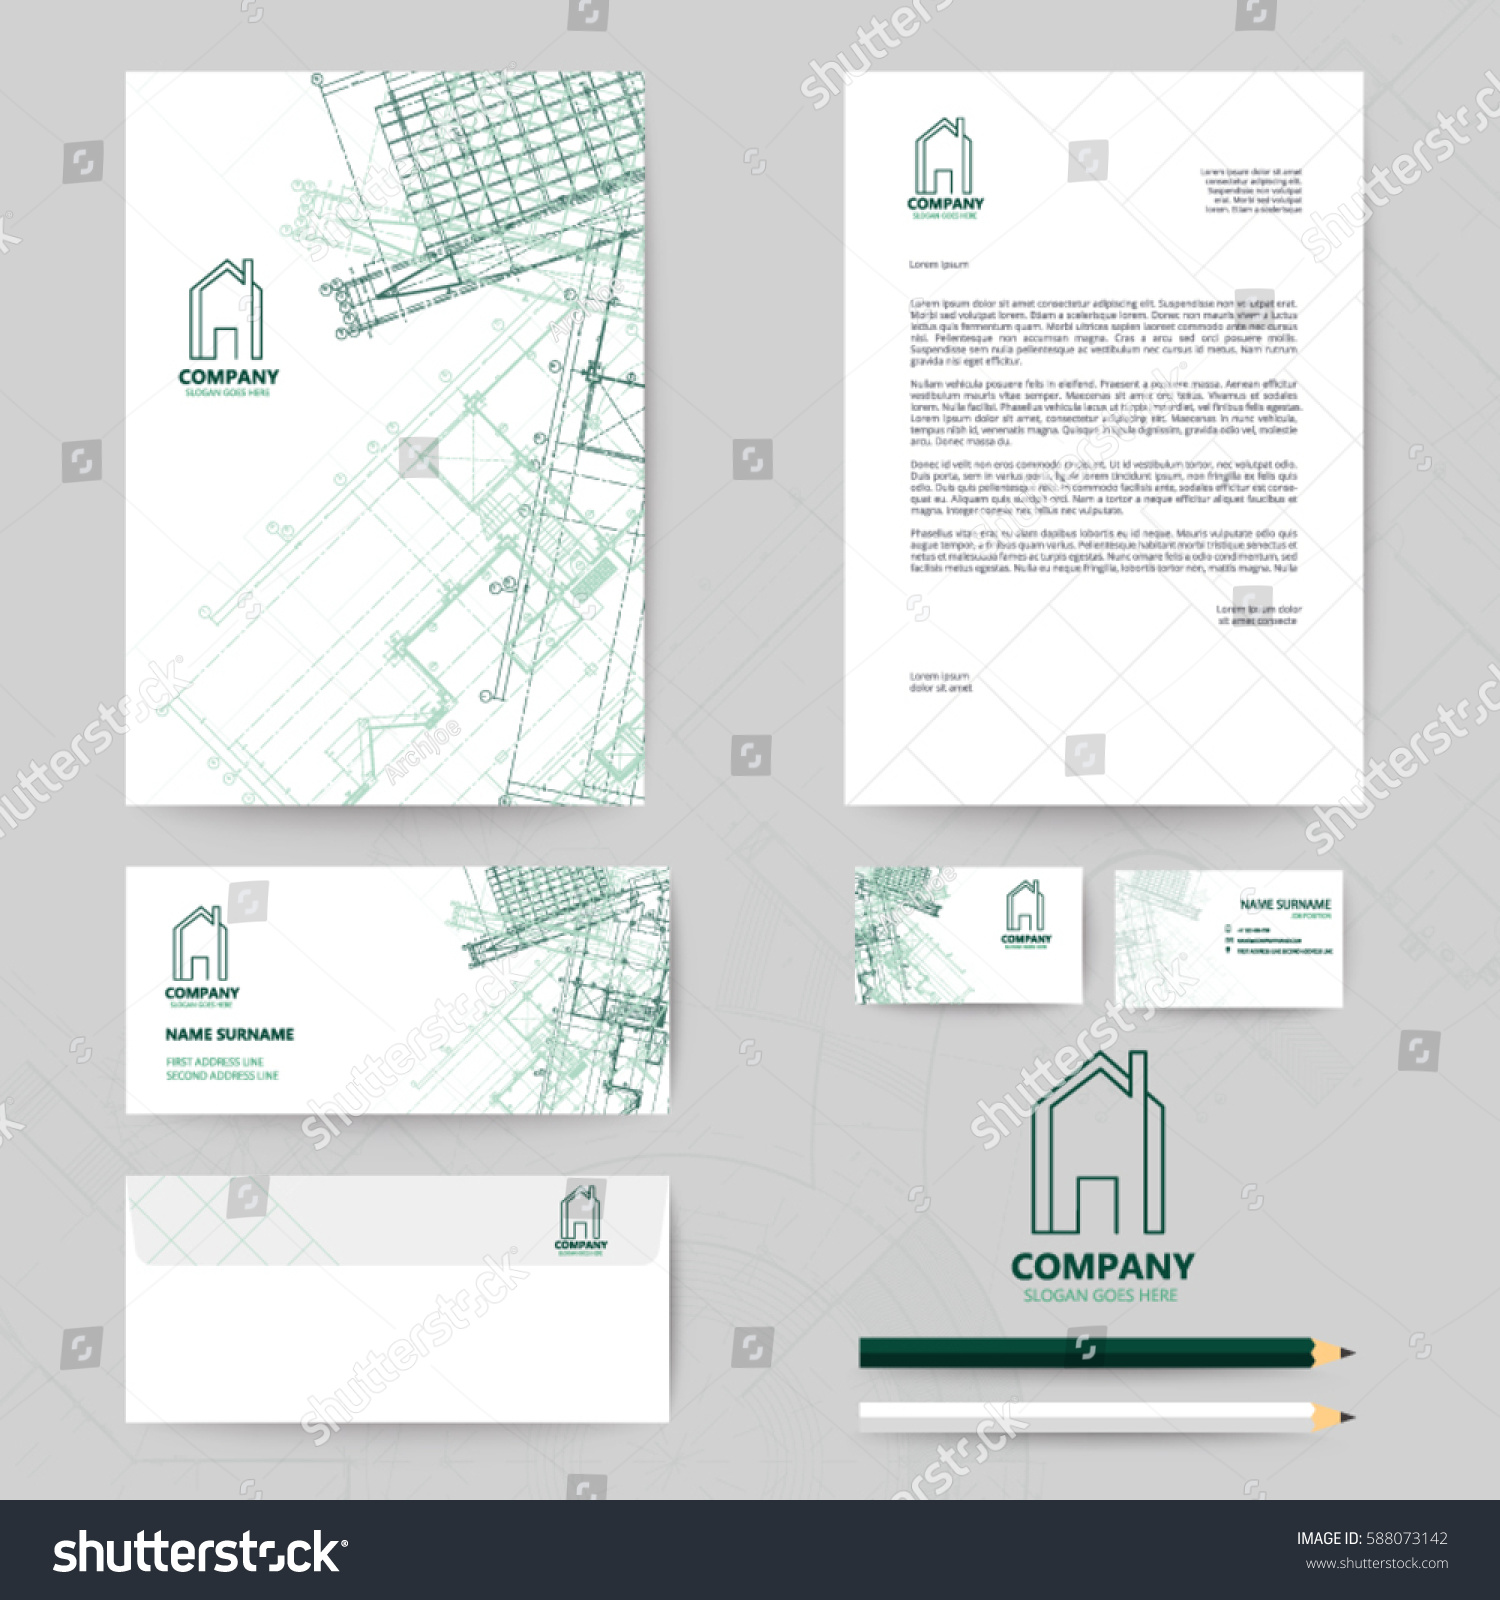 Corporate identity template design blueprint background stock vector corporate identity template design with blueprint background business realestate malvernweather Images